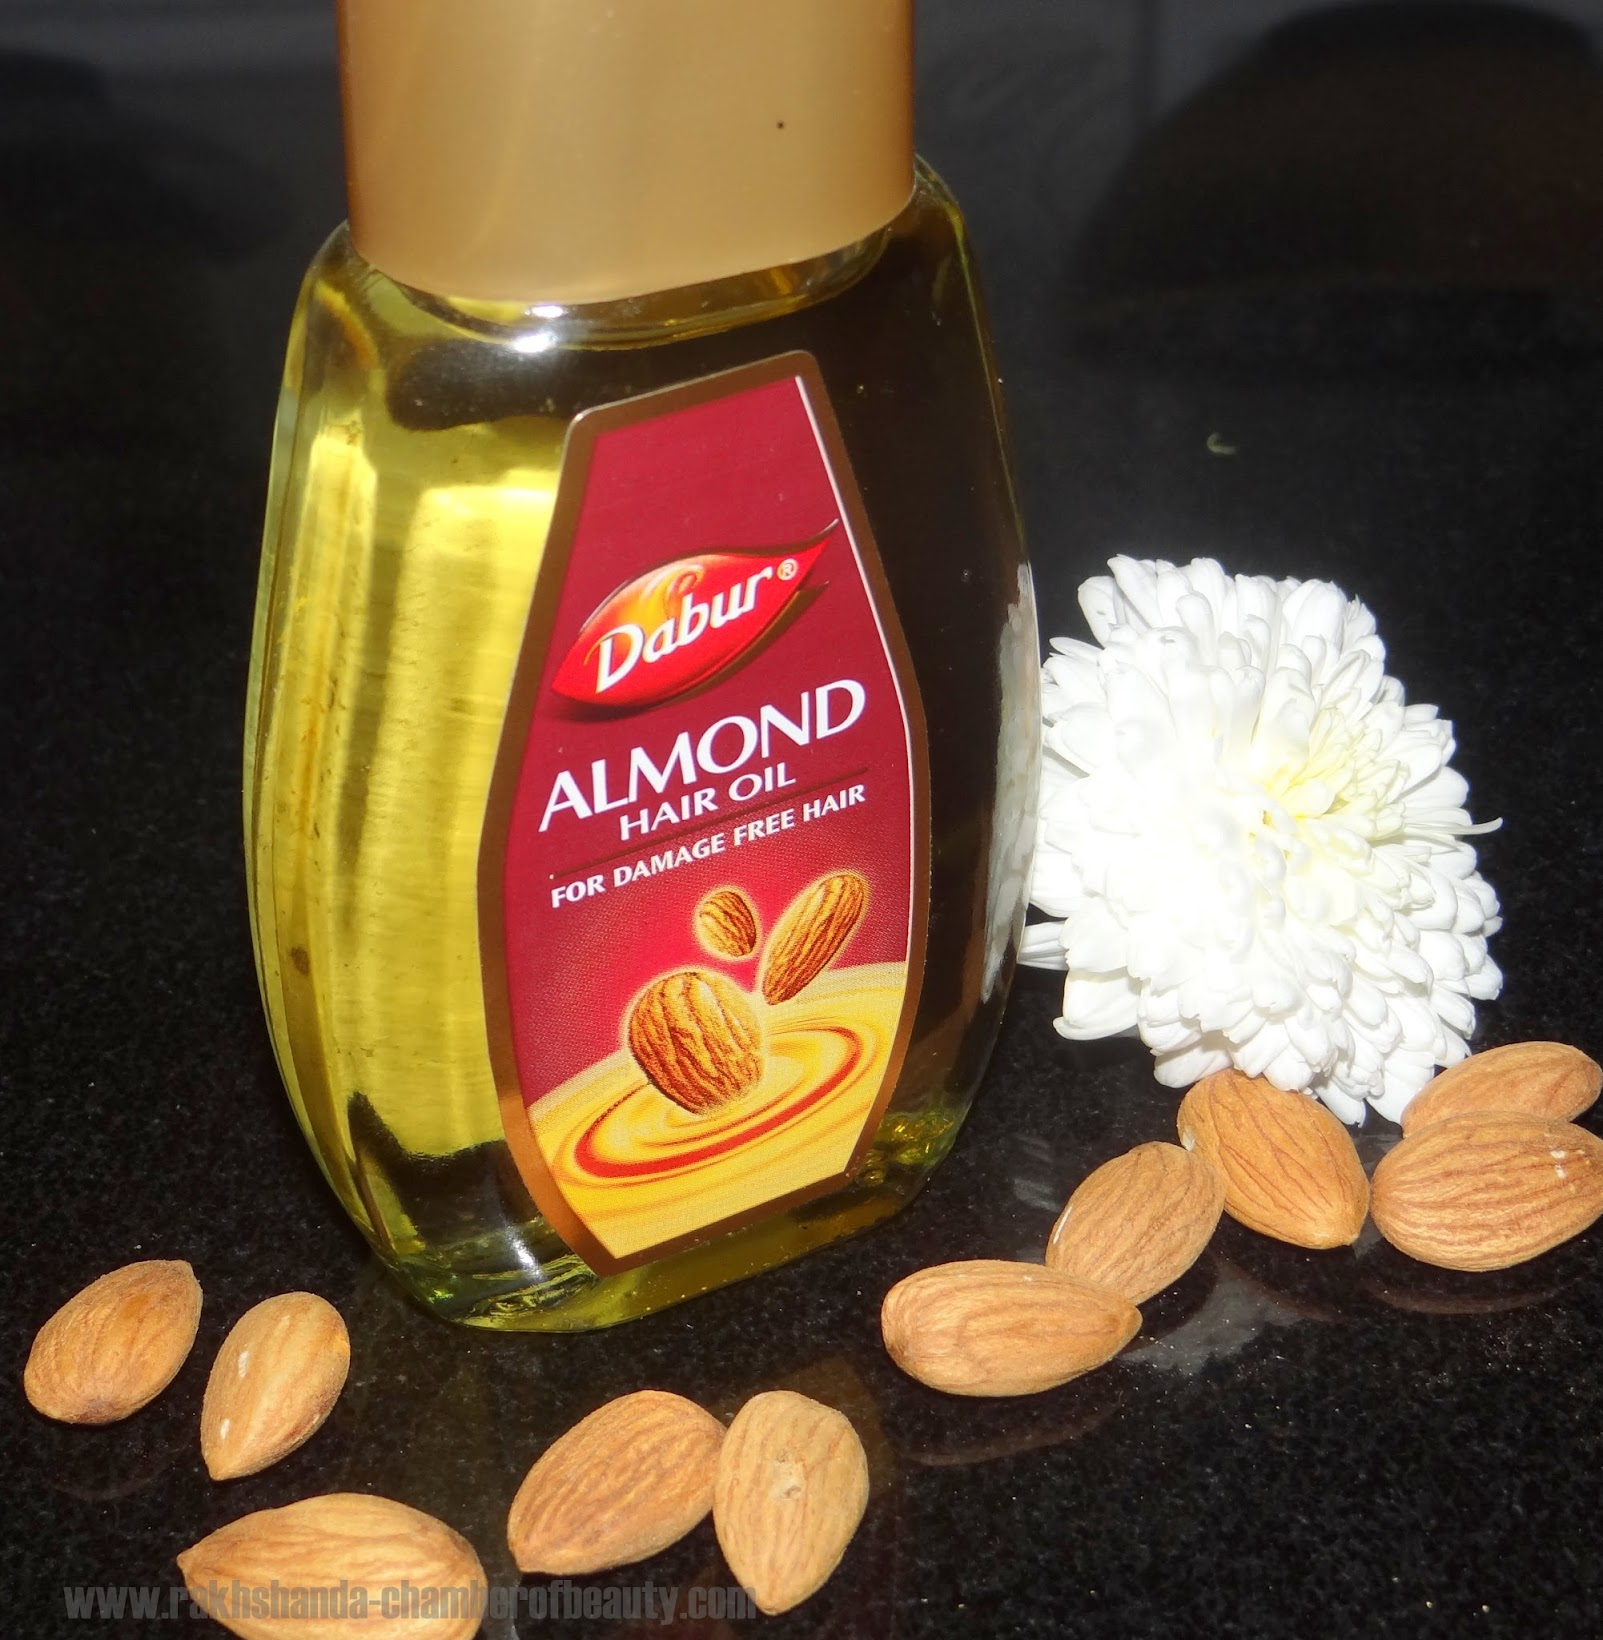 Dabur Almond Hair Oil Review and Price in India